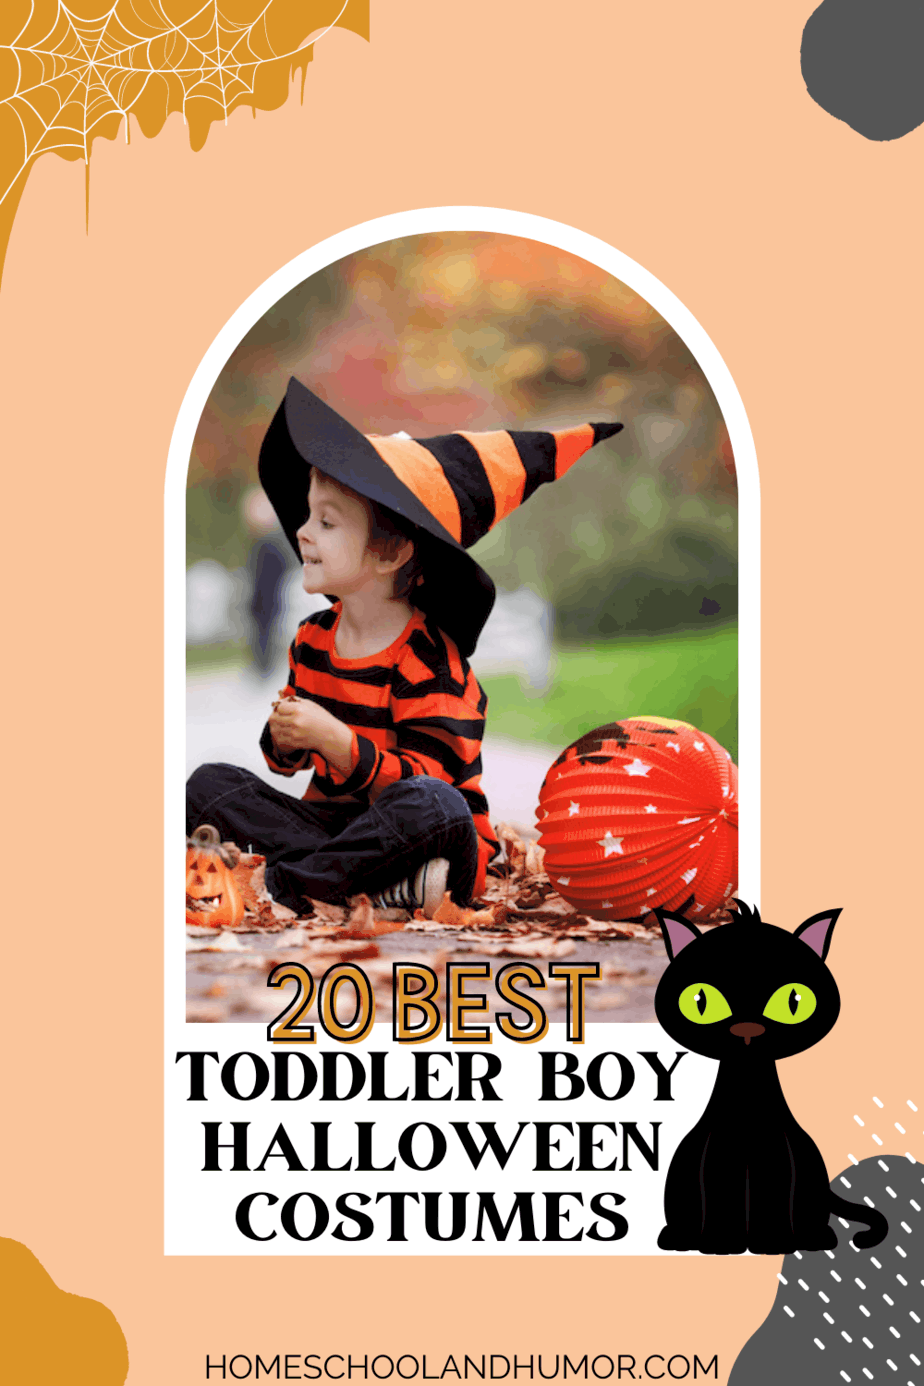 20 Best Toddler Boy Halloween Costumes for 2021